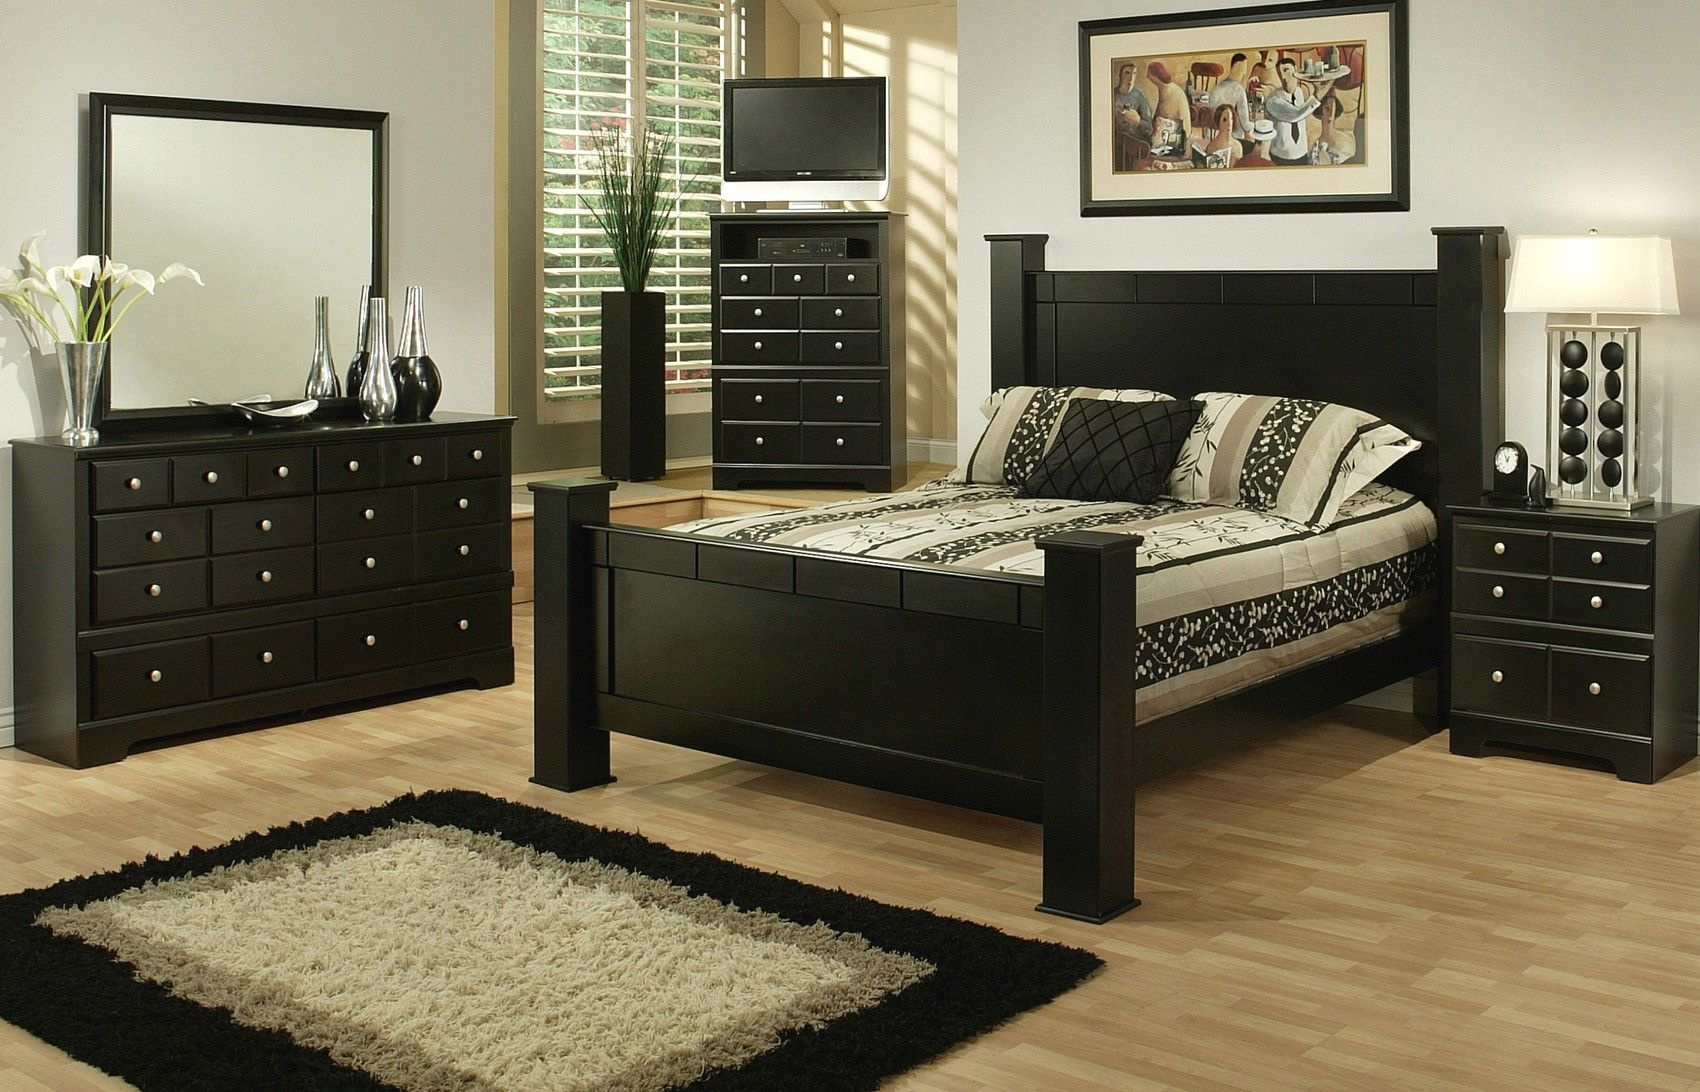 Fancy Bedroom Sets Amusing Feeling Great With Queen Bedroom Sets  Home Design & Hairstyle Design Decoration